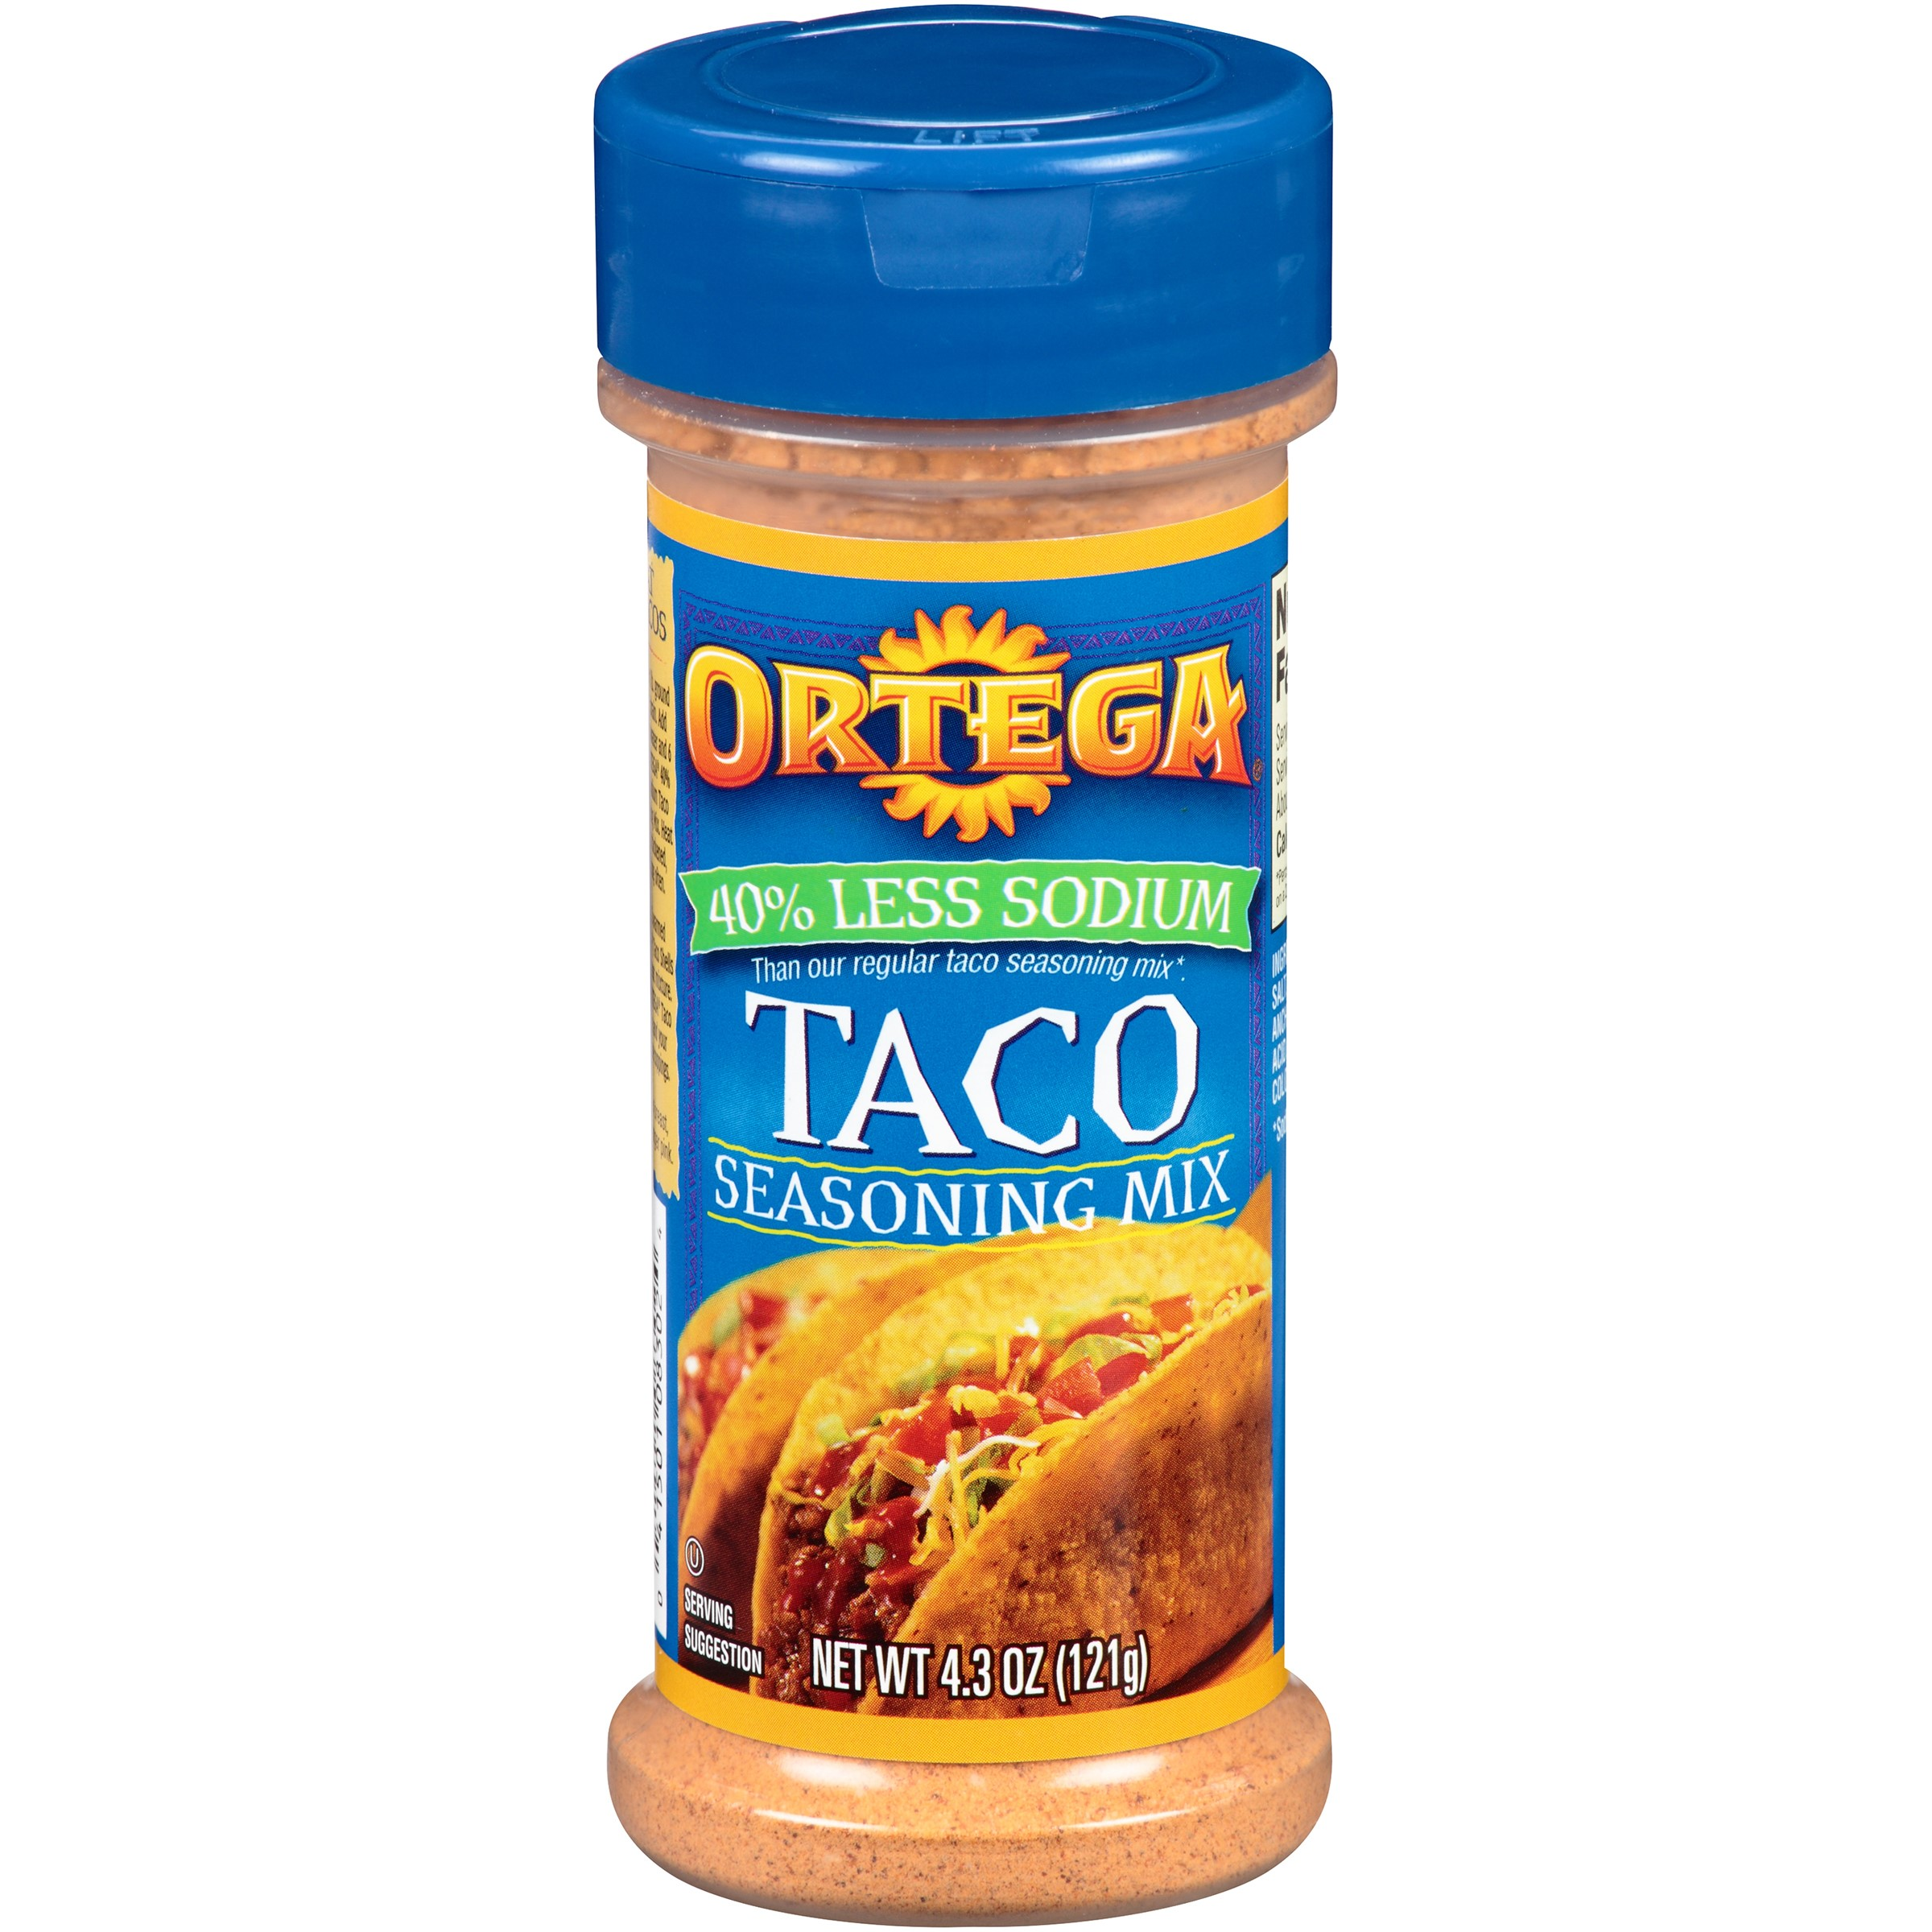 Ortega % Less Sodium Taco Seasoning, 4.3 Oz